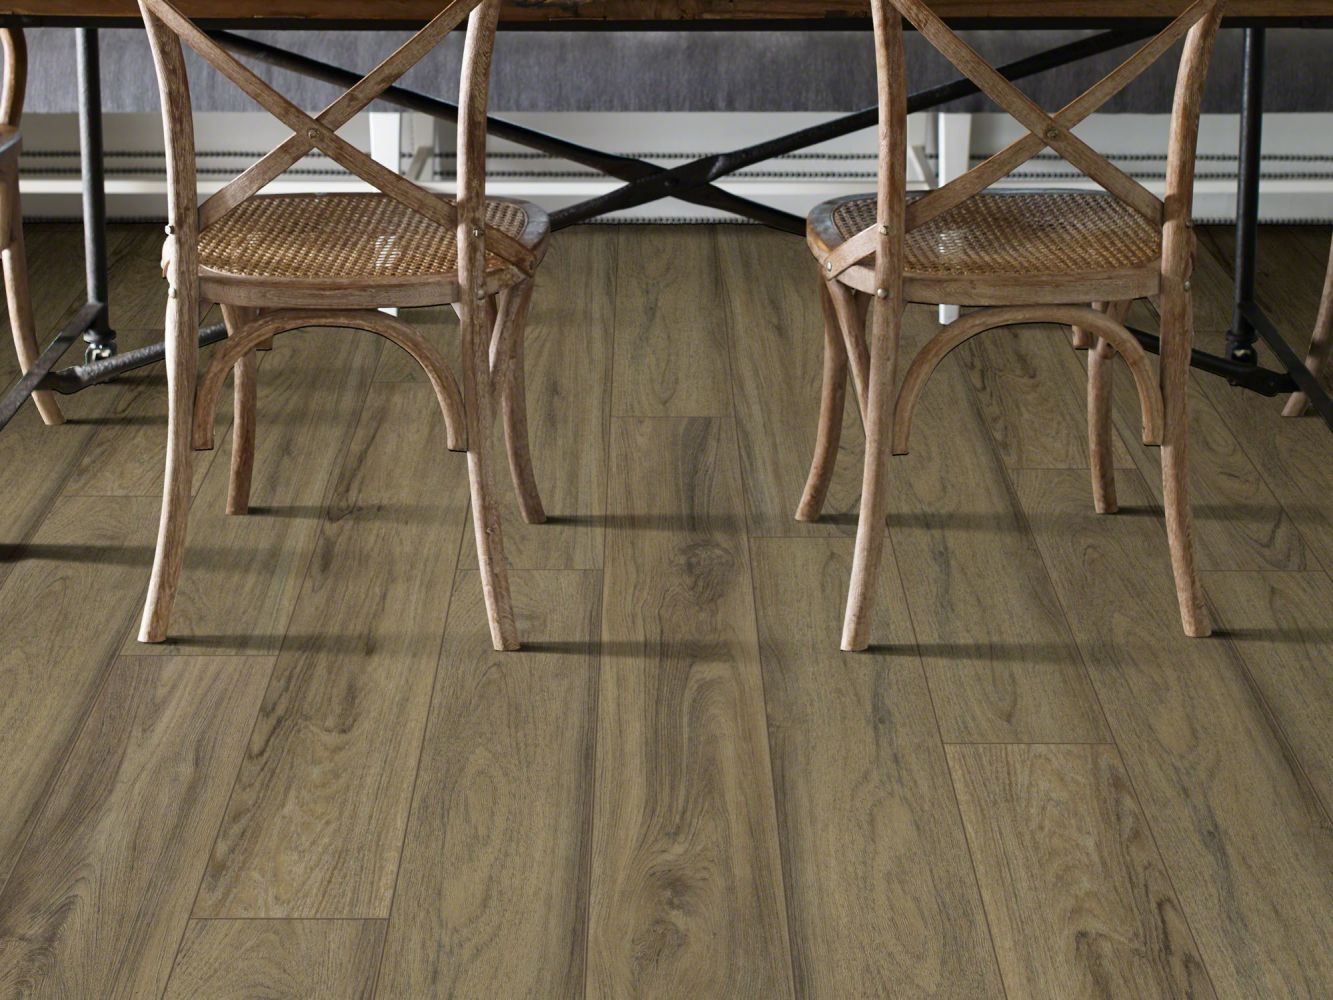 Shaw Floors Resilient Residential Pantheon HD Plus Fiano 00587_2001V